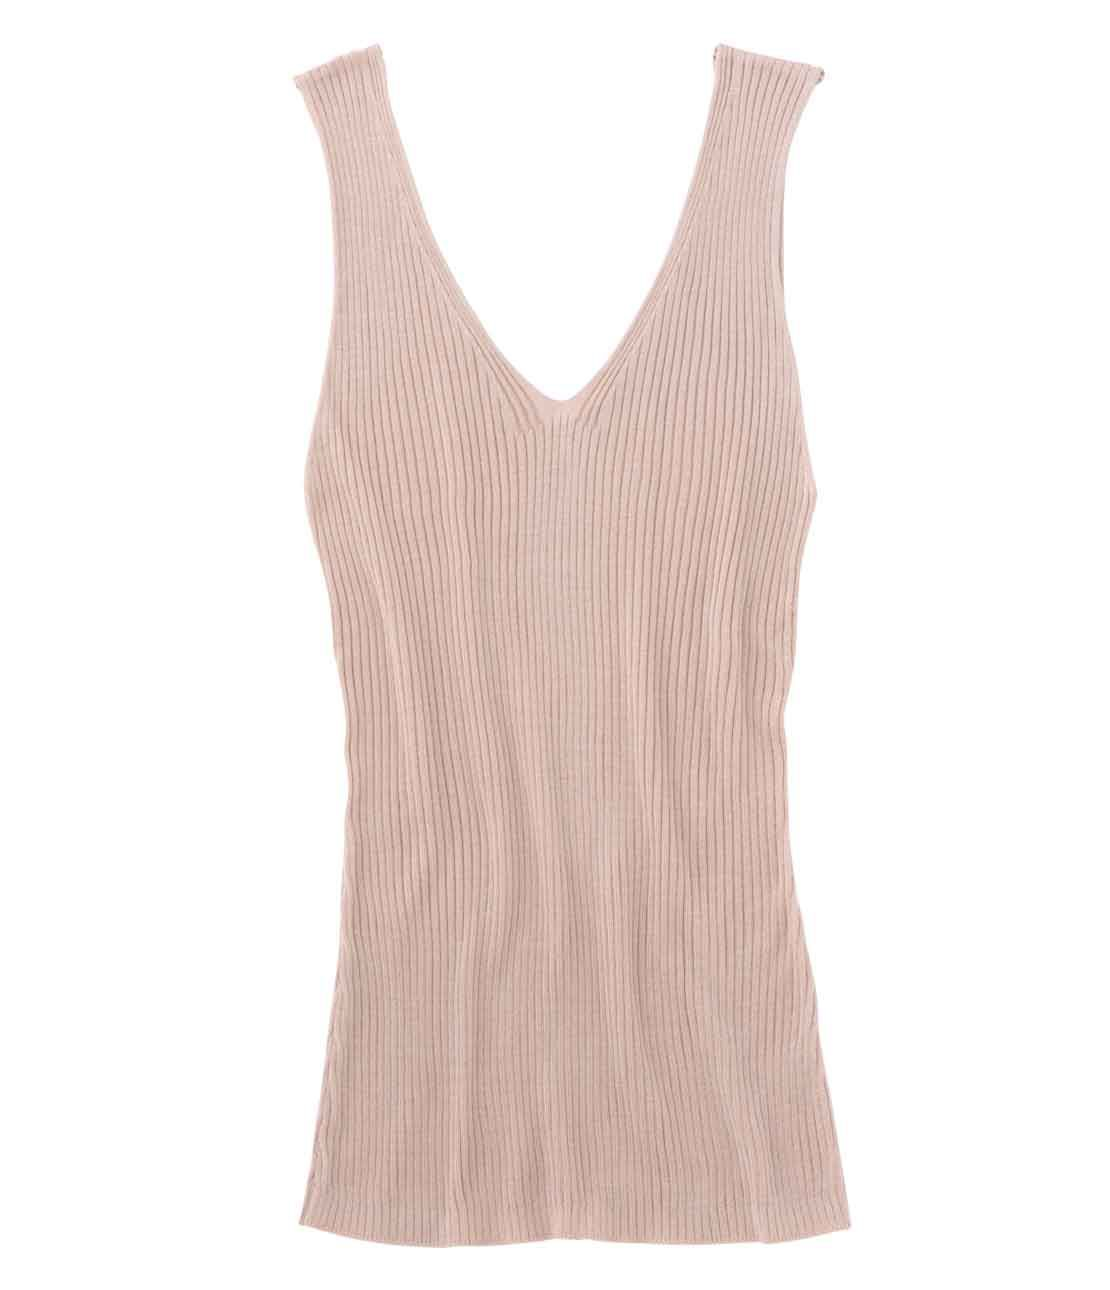 V-neck sleeveless knit